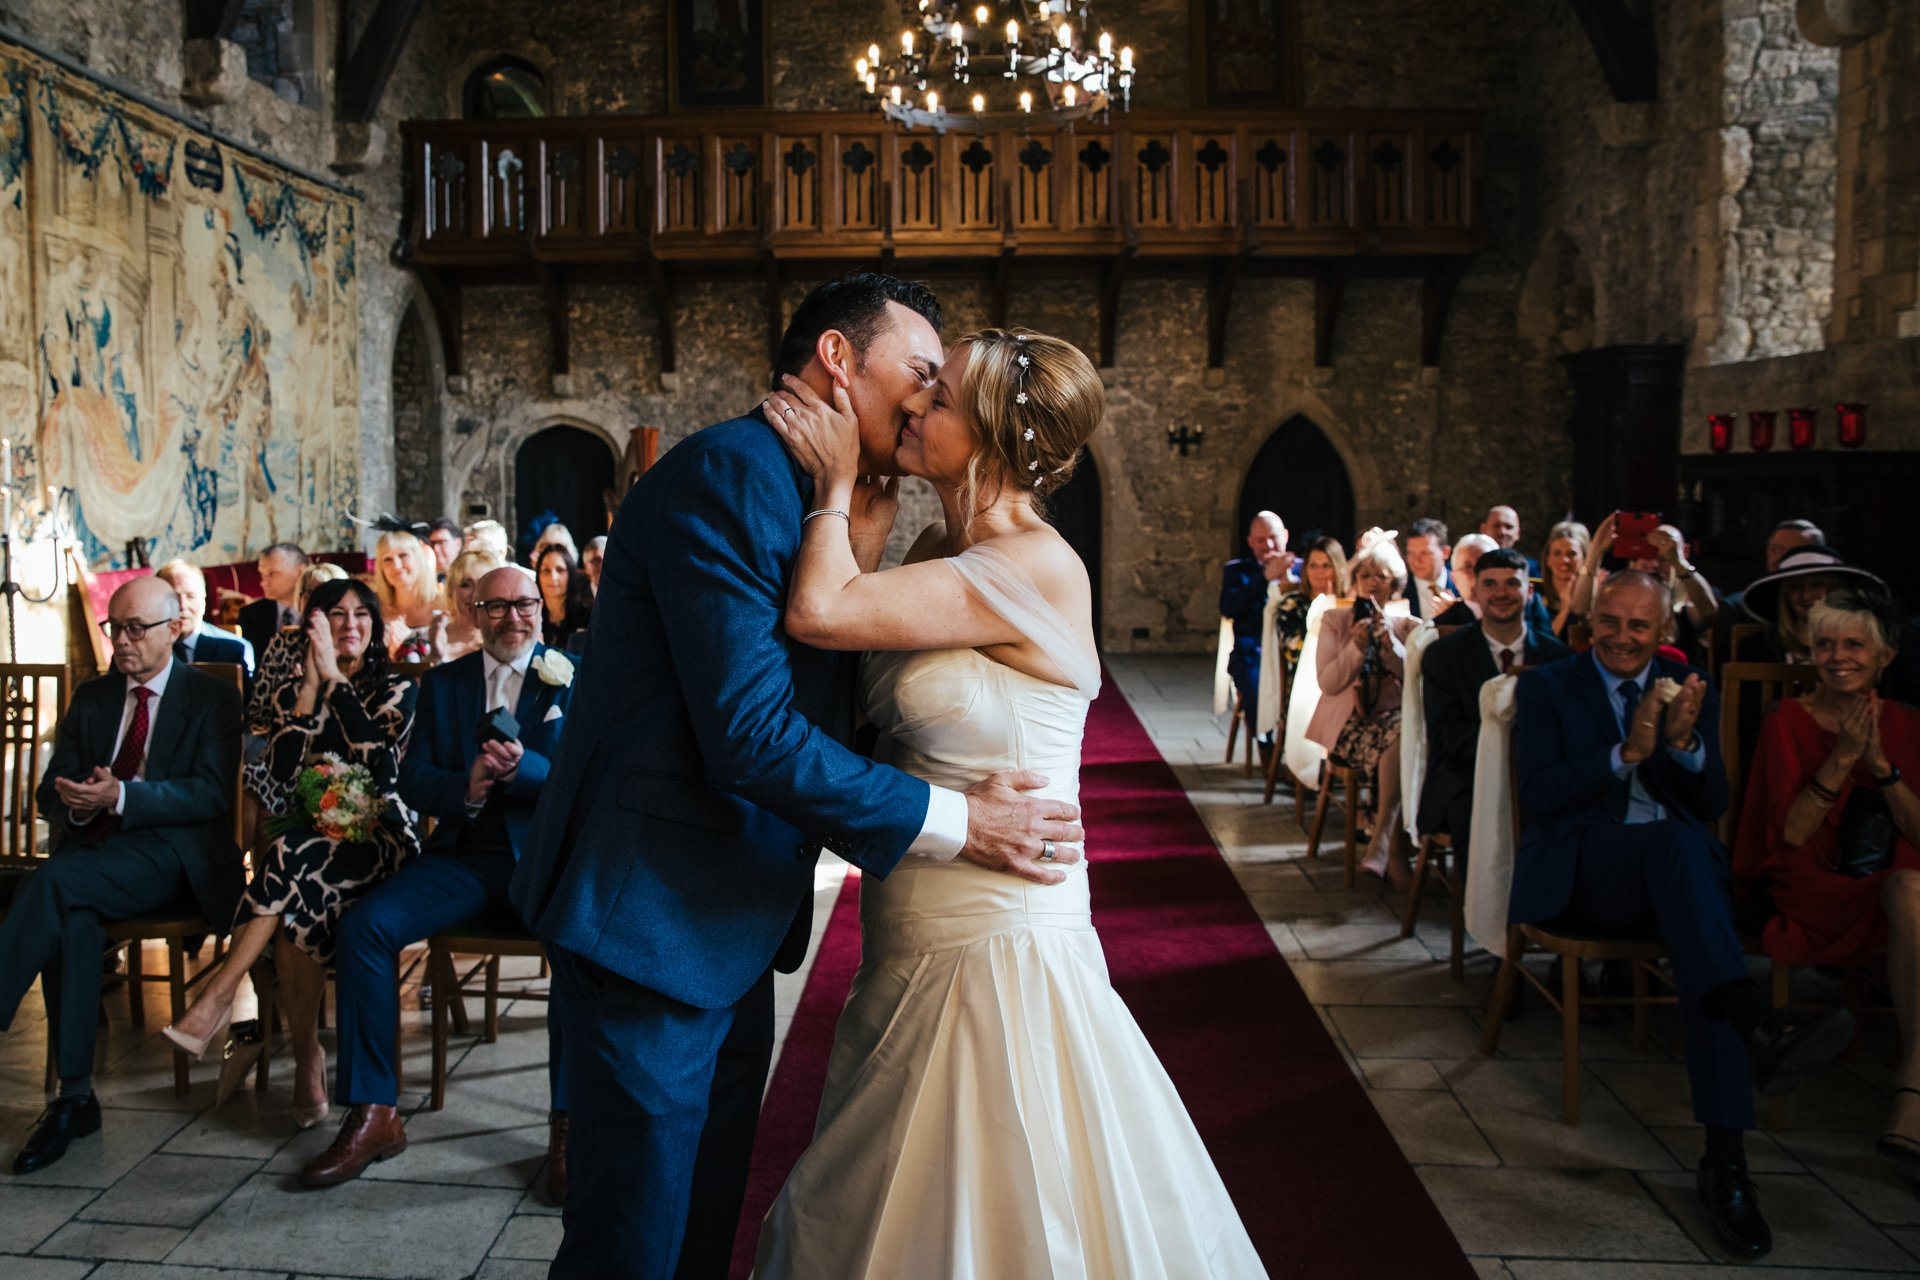 First kiss of Bride and Groom at Allington Castle